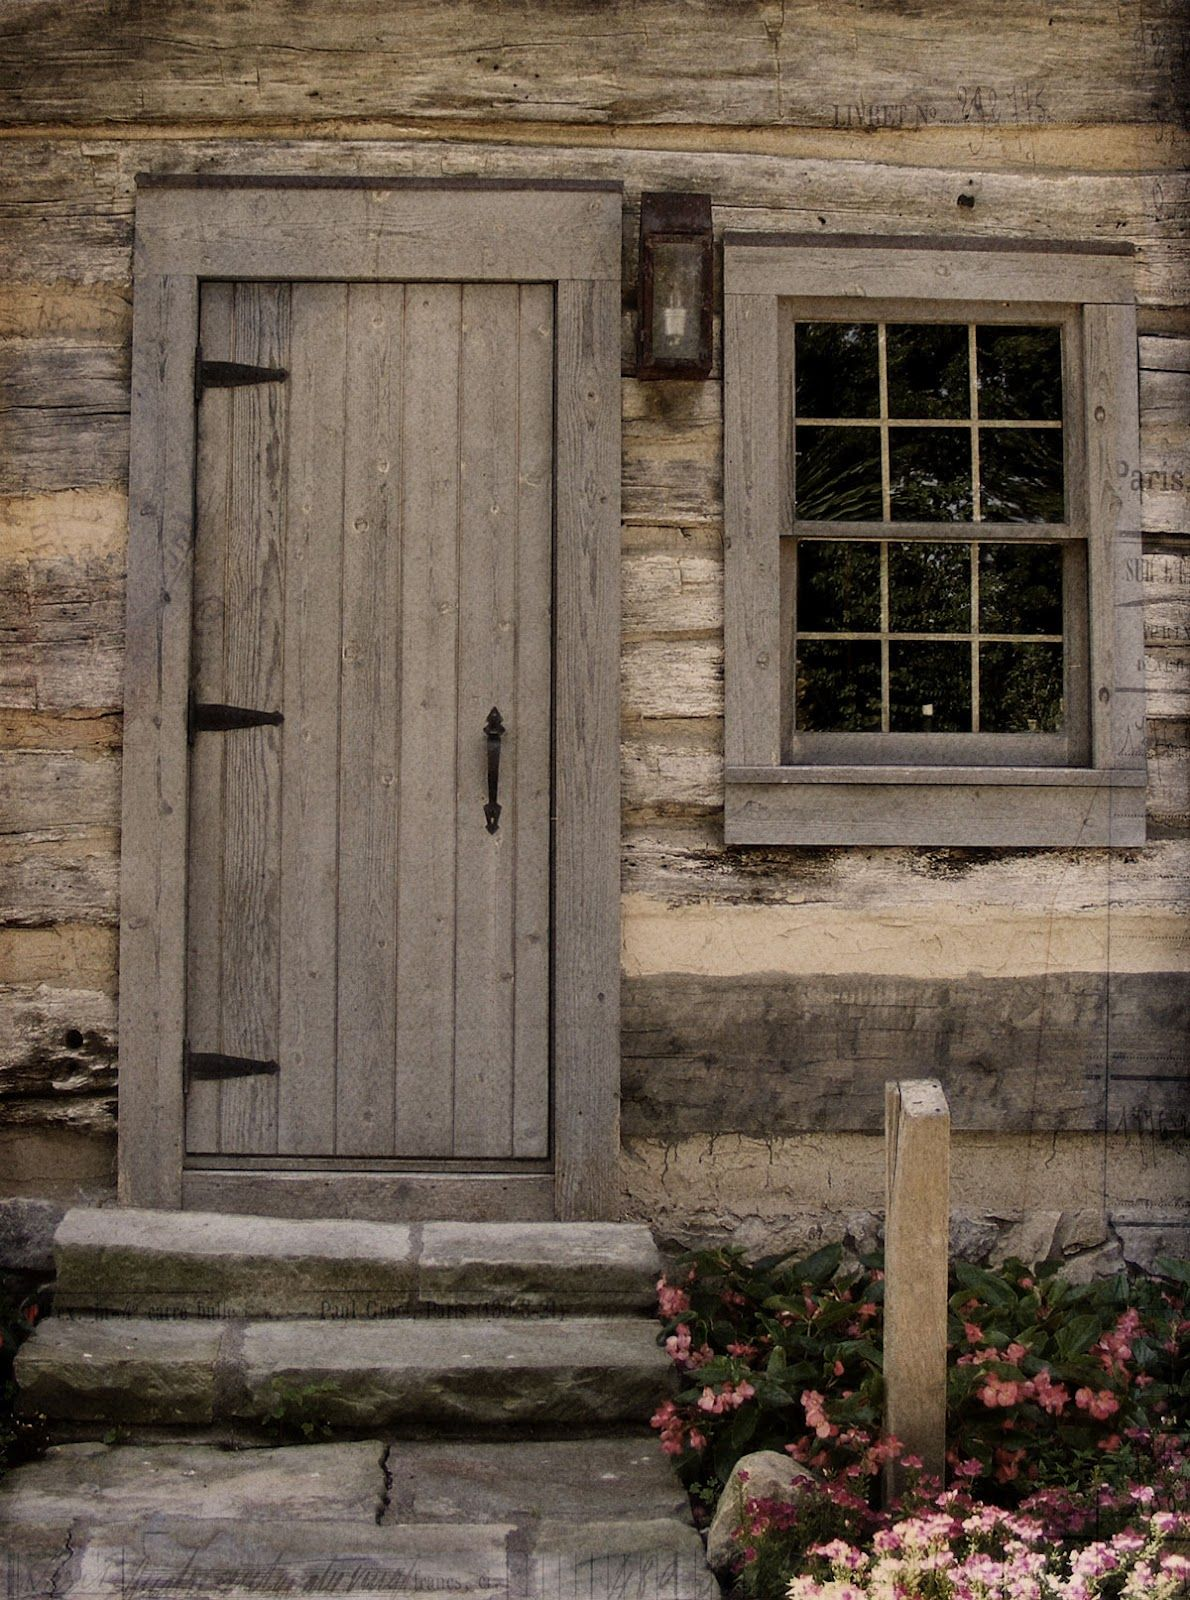 Swell Old Log Cabin Doors There Were No Guides To Regale With Interior Design Ideas Inesswwsoteloinfo